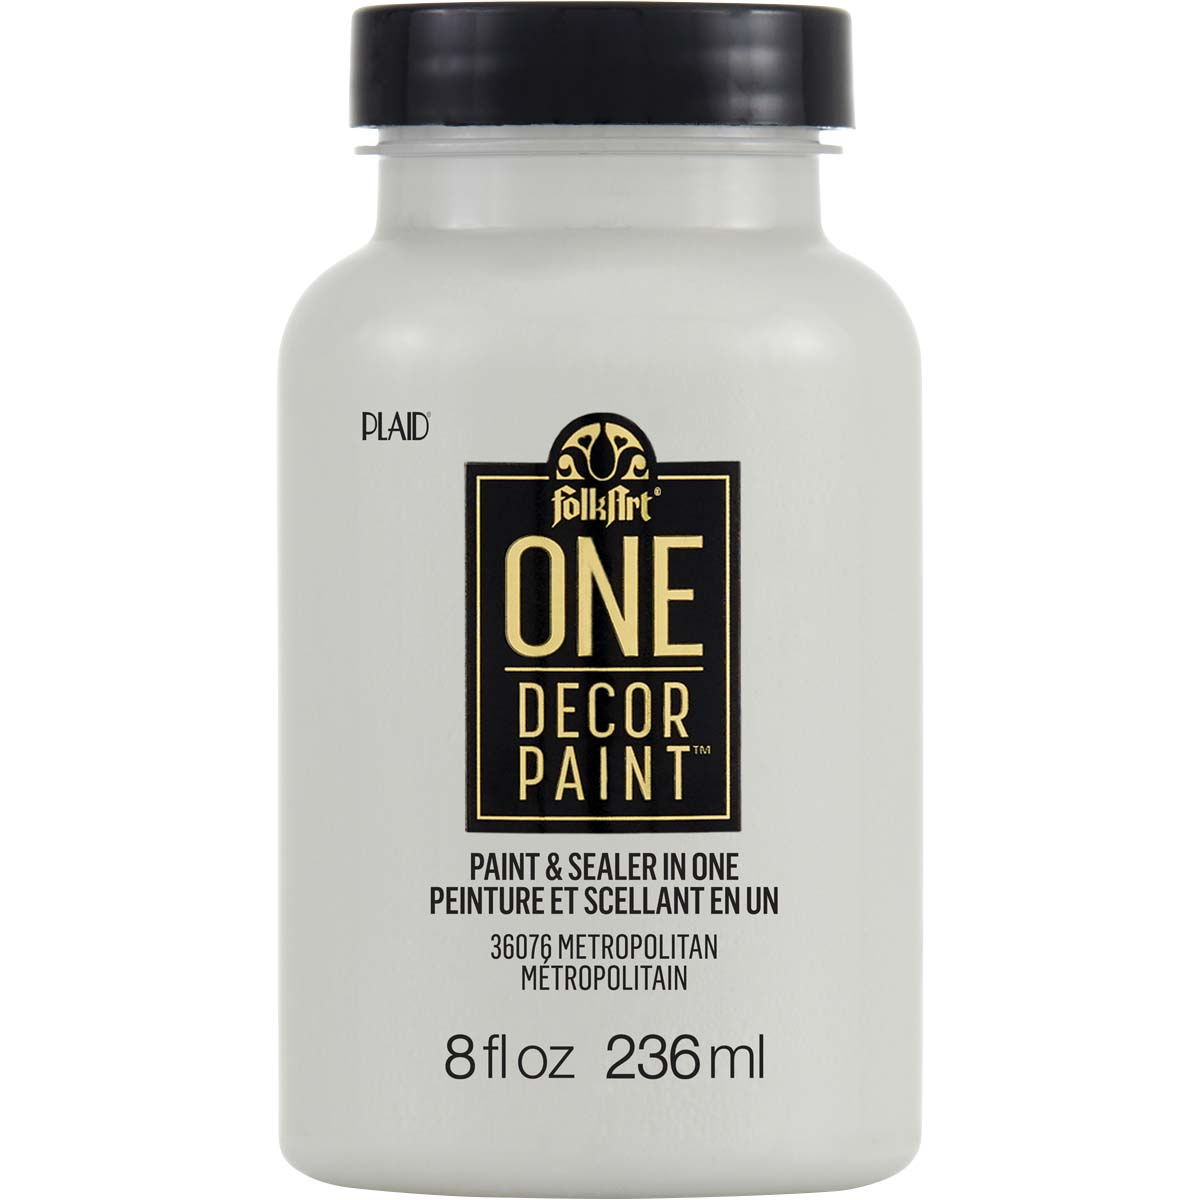 FolkArt ® One Décor Paint™ - Metropolitan, 8 oz. - 36076